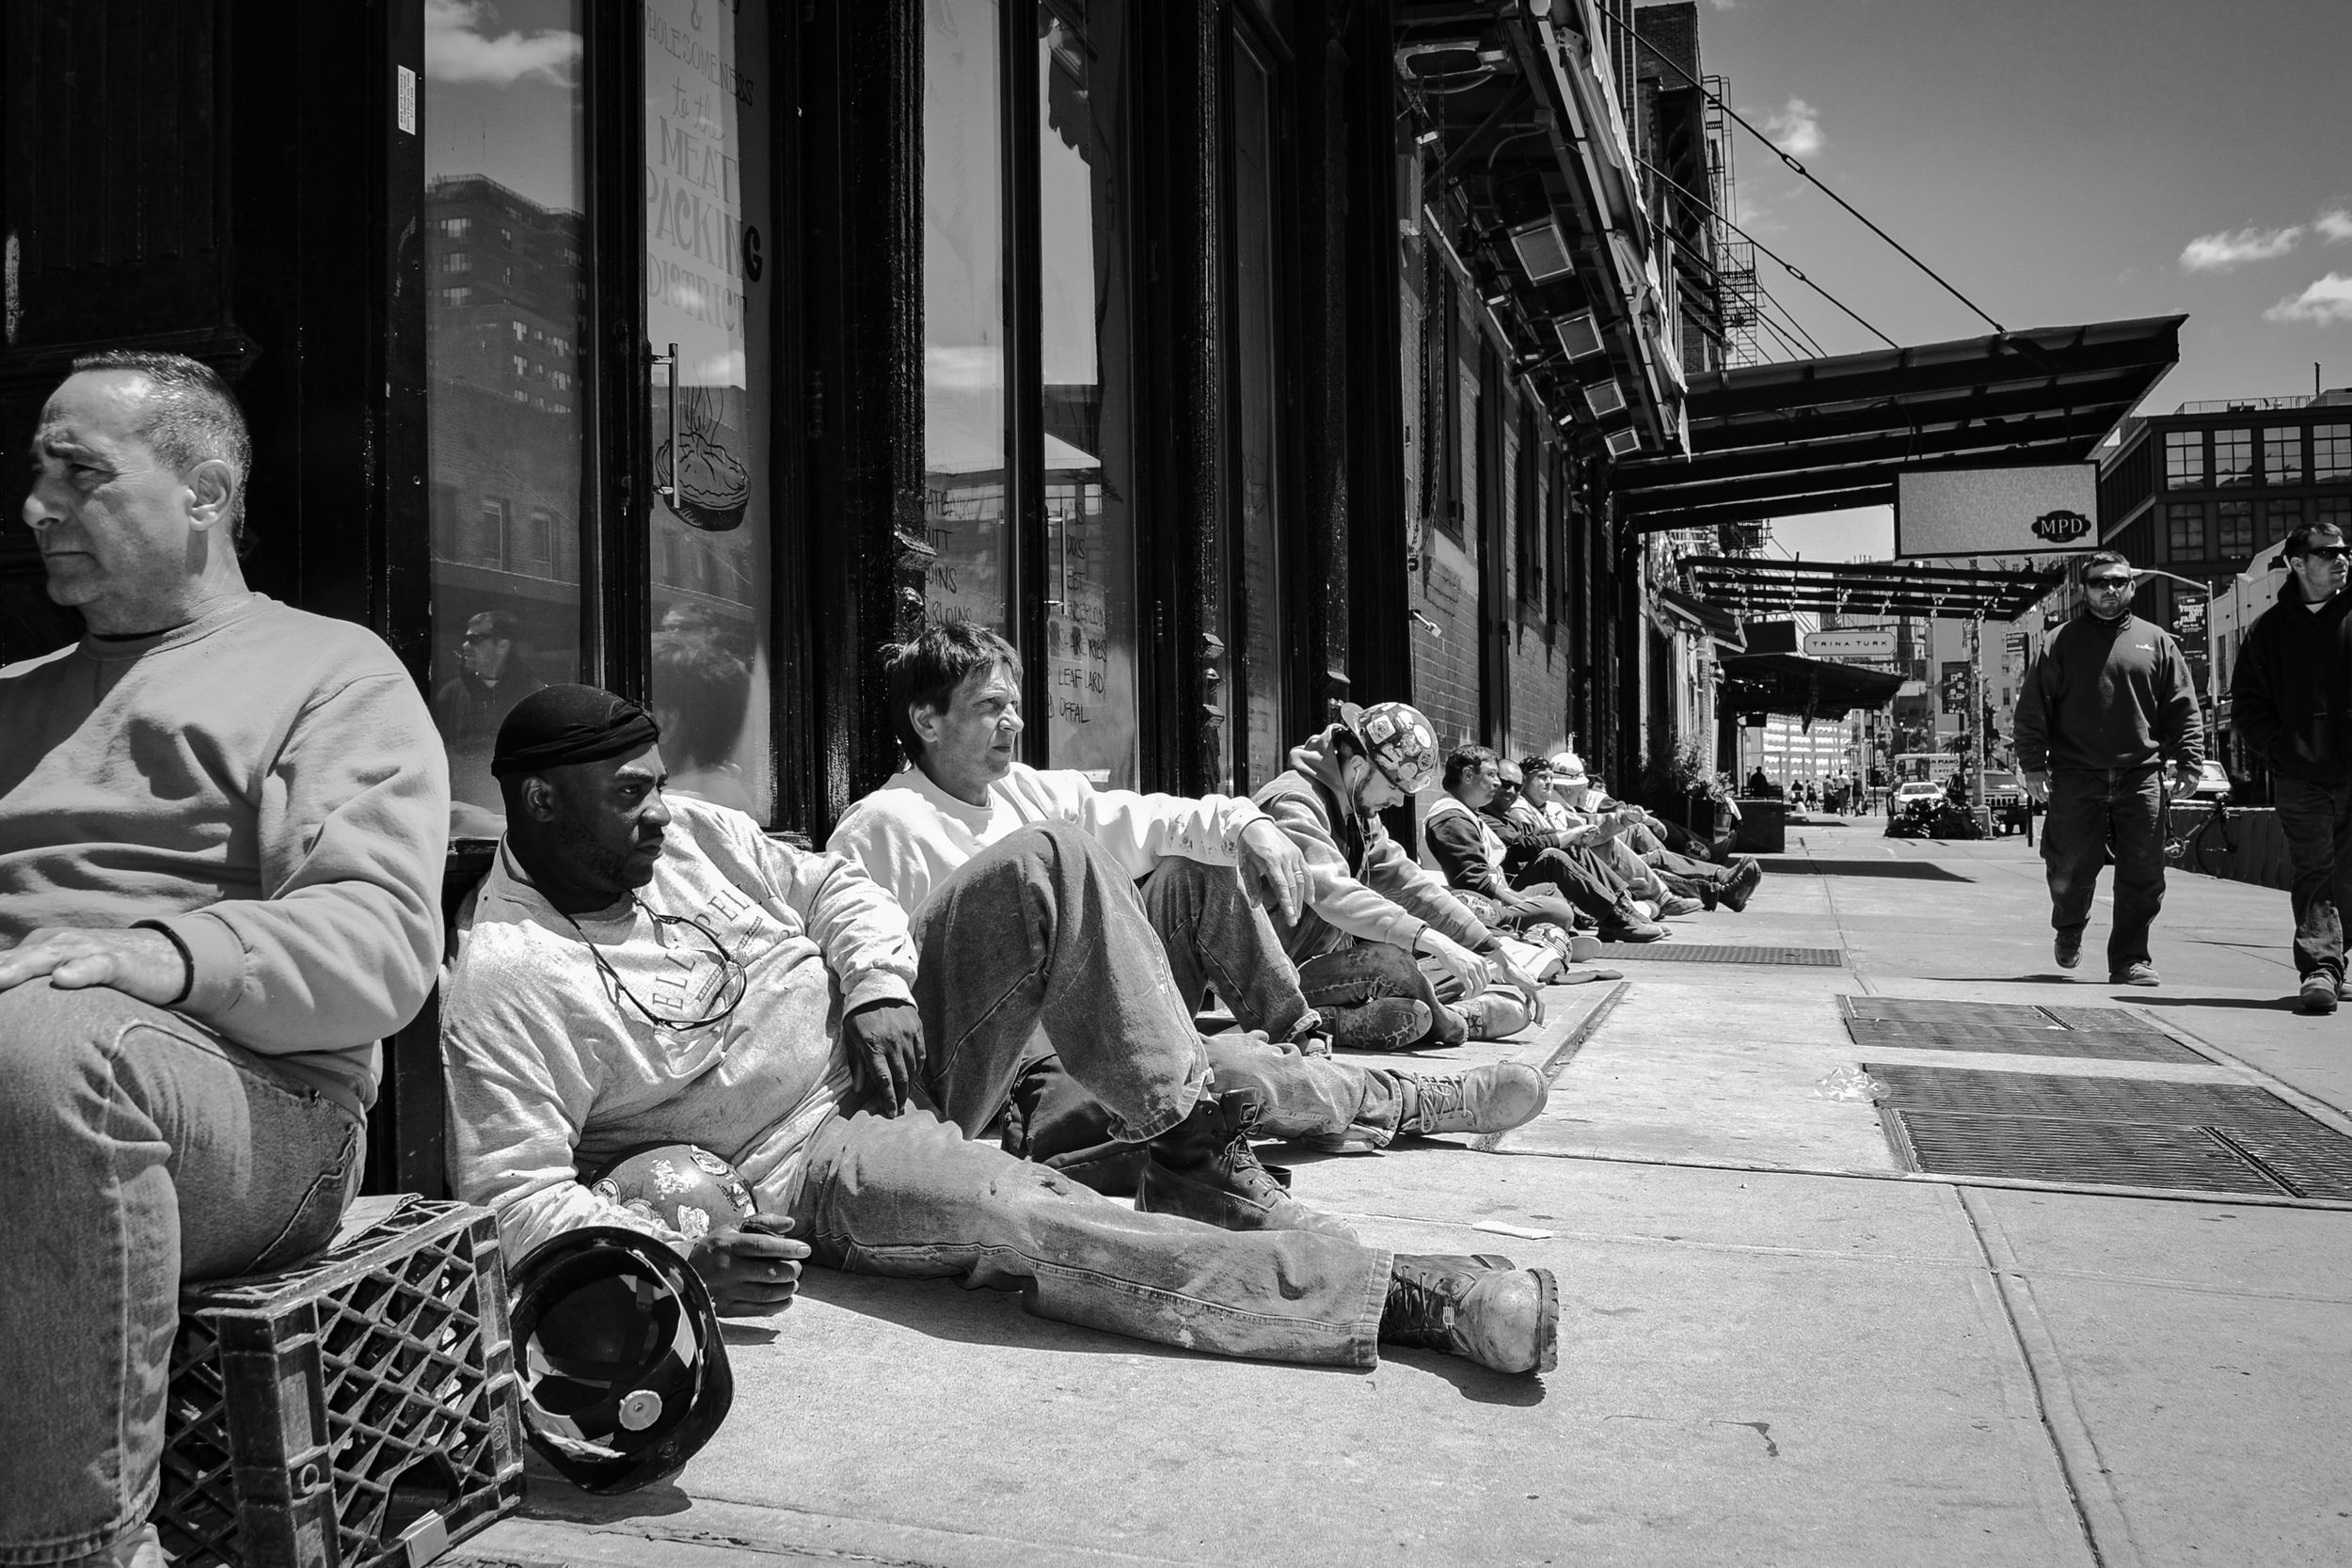 Lunch break. Meatpacking district, Manhattan, NYC. New York.